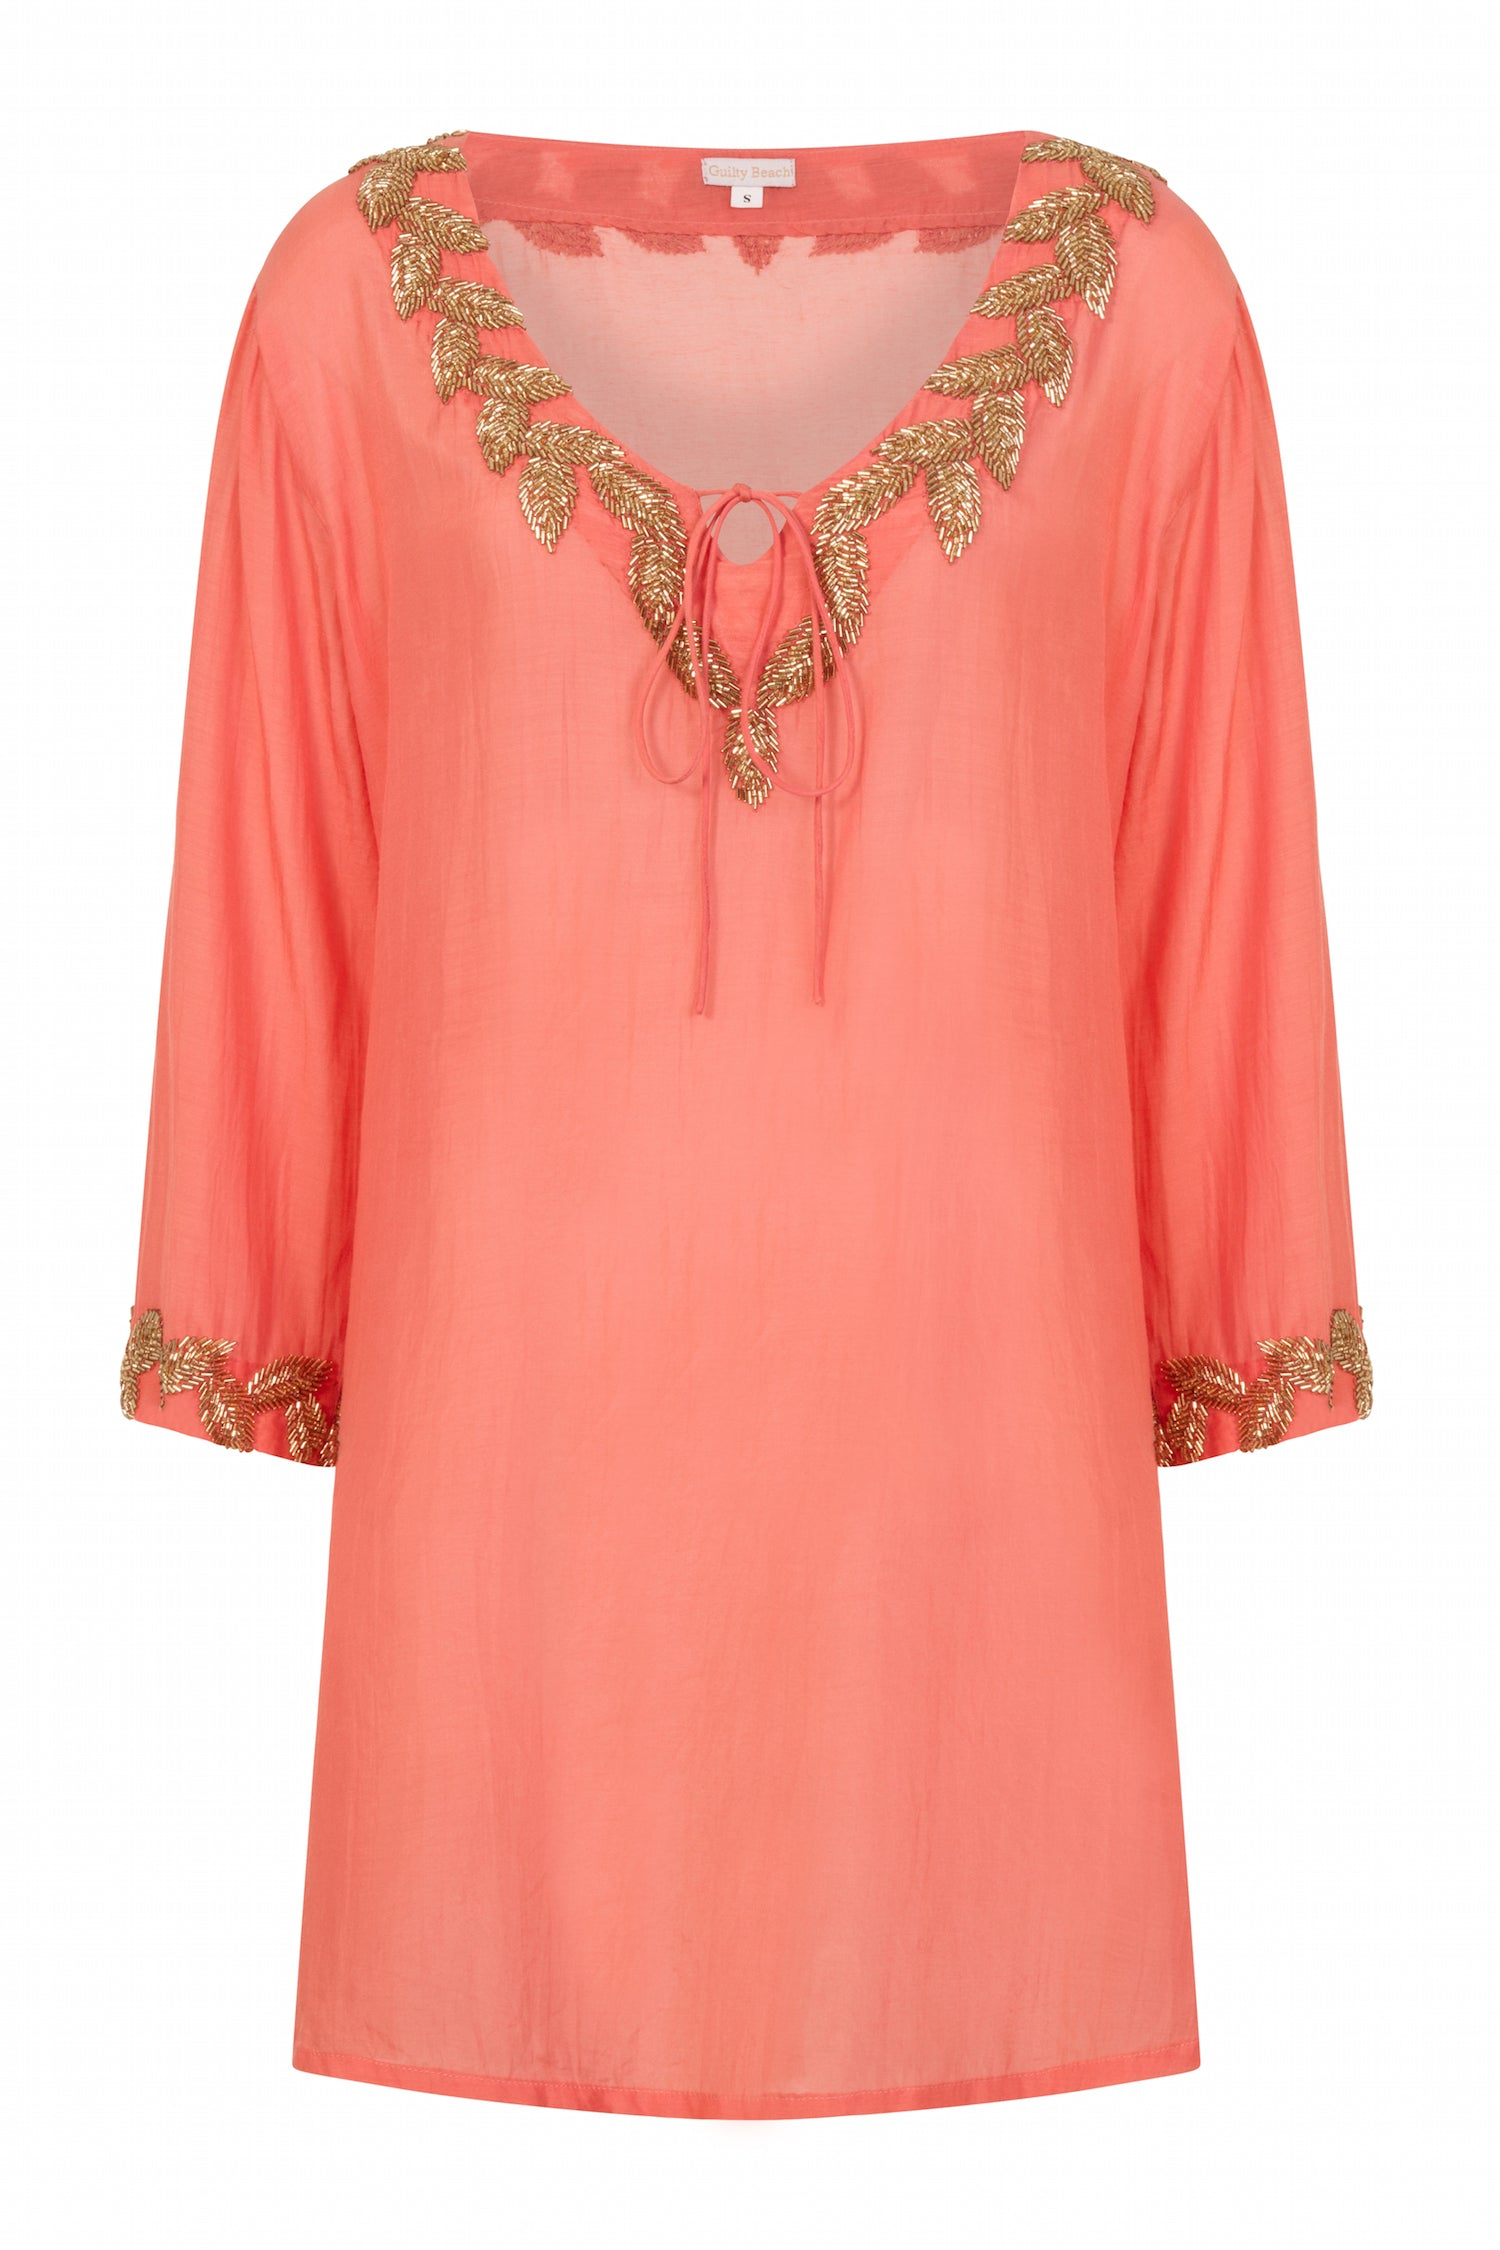 Sirena shirt style designer kaftan (hand beaded) orange - Guilty Beach